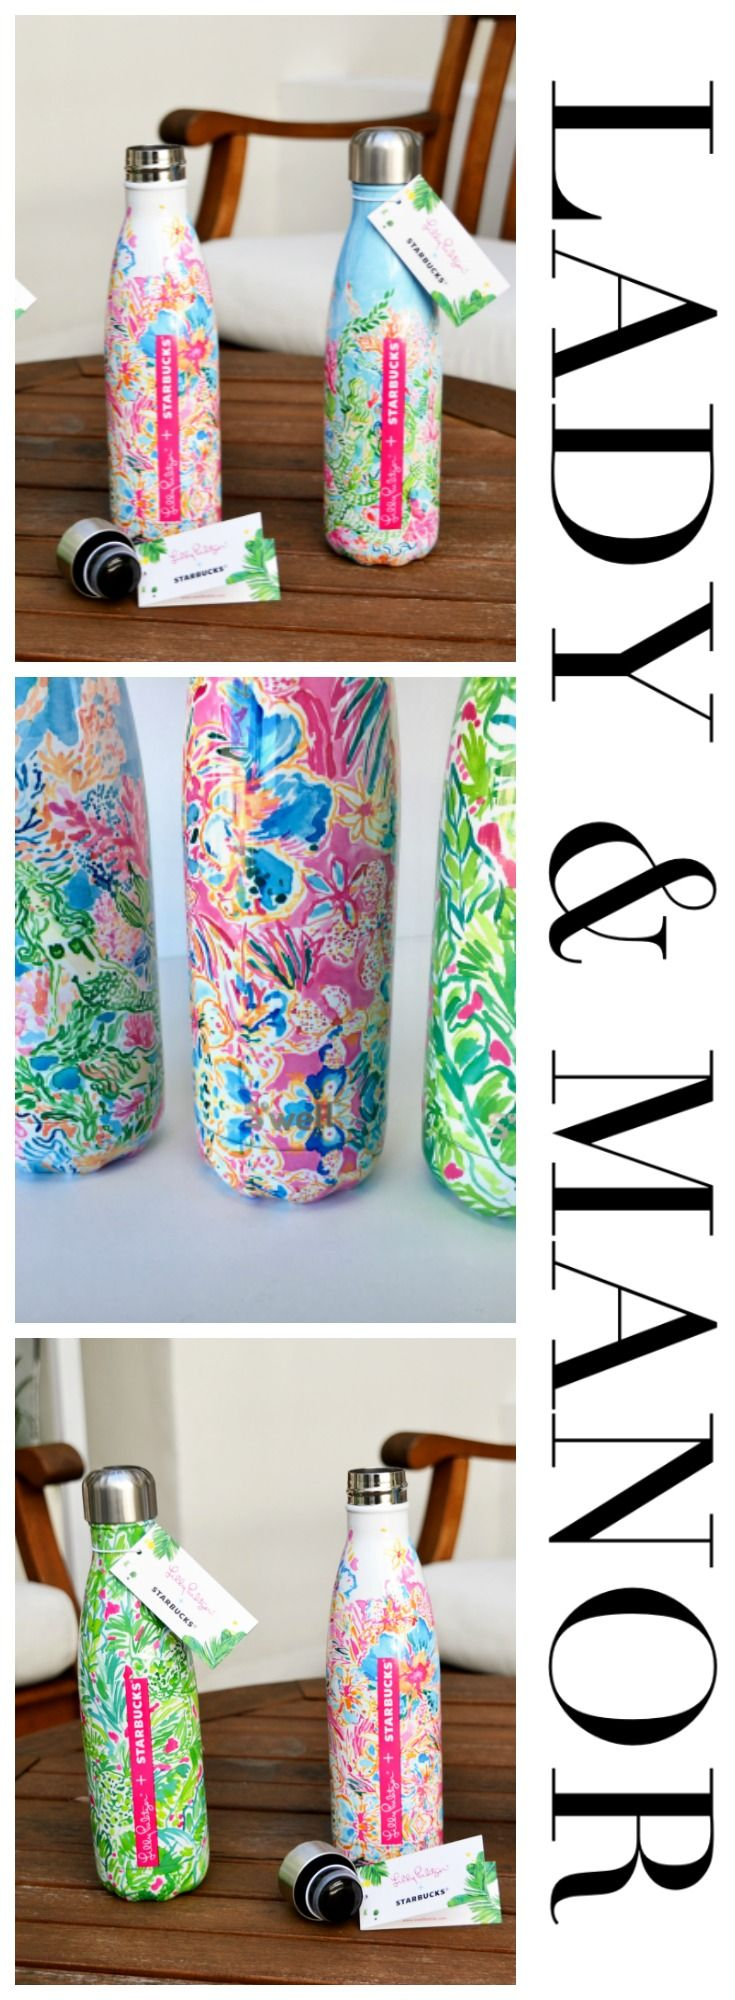 Starbucks Collaboration : Lilly Pulitzer + S'well limited edition water bottles. {LadyAndManor.com}